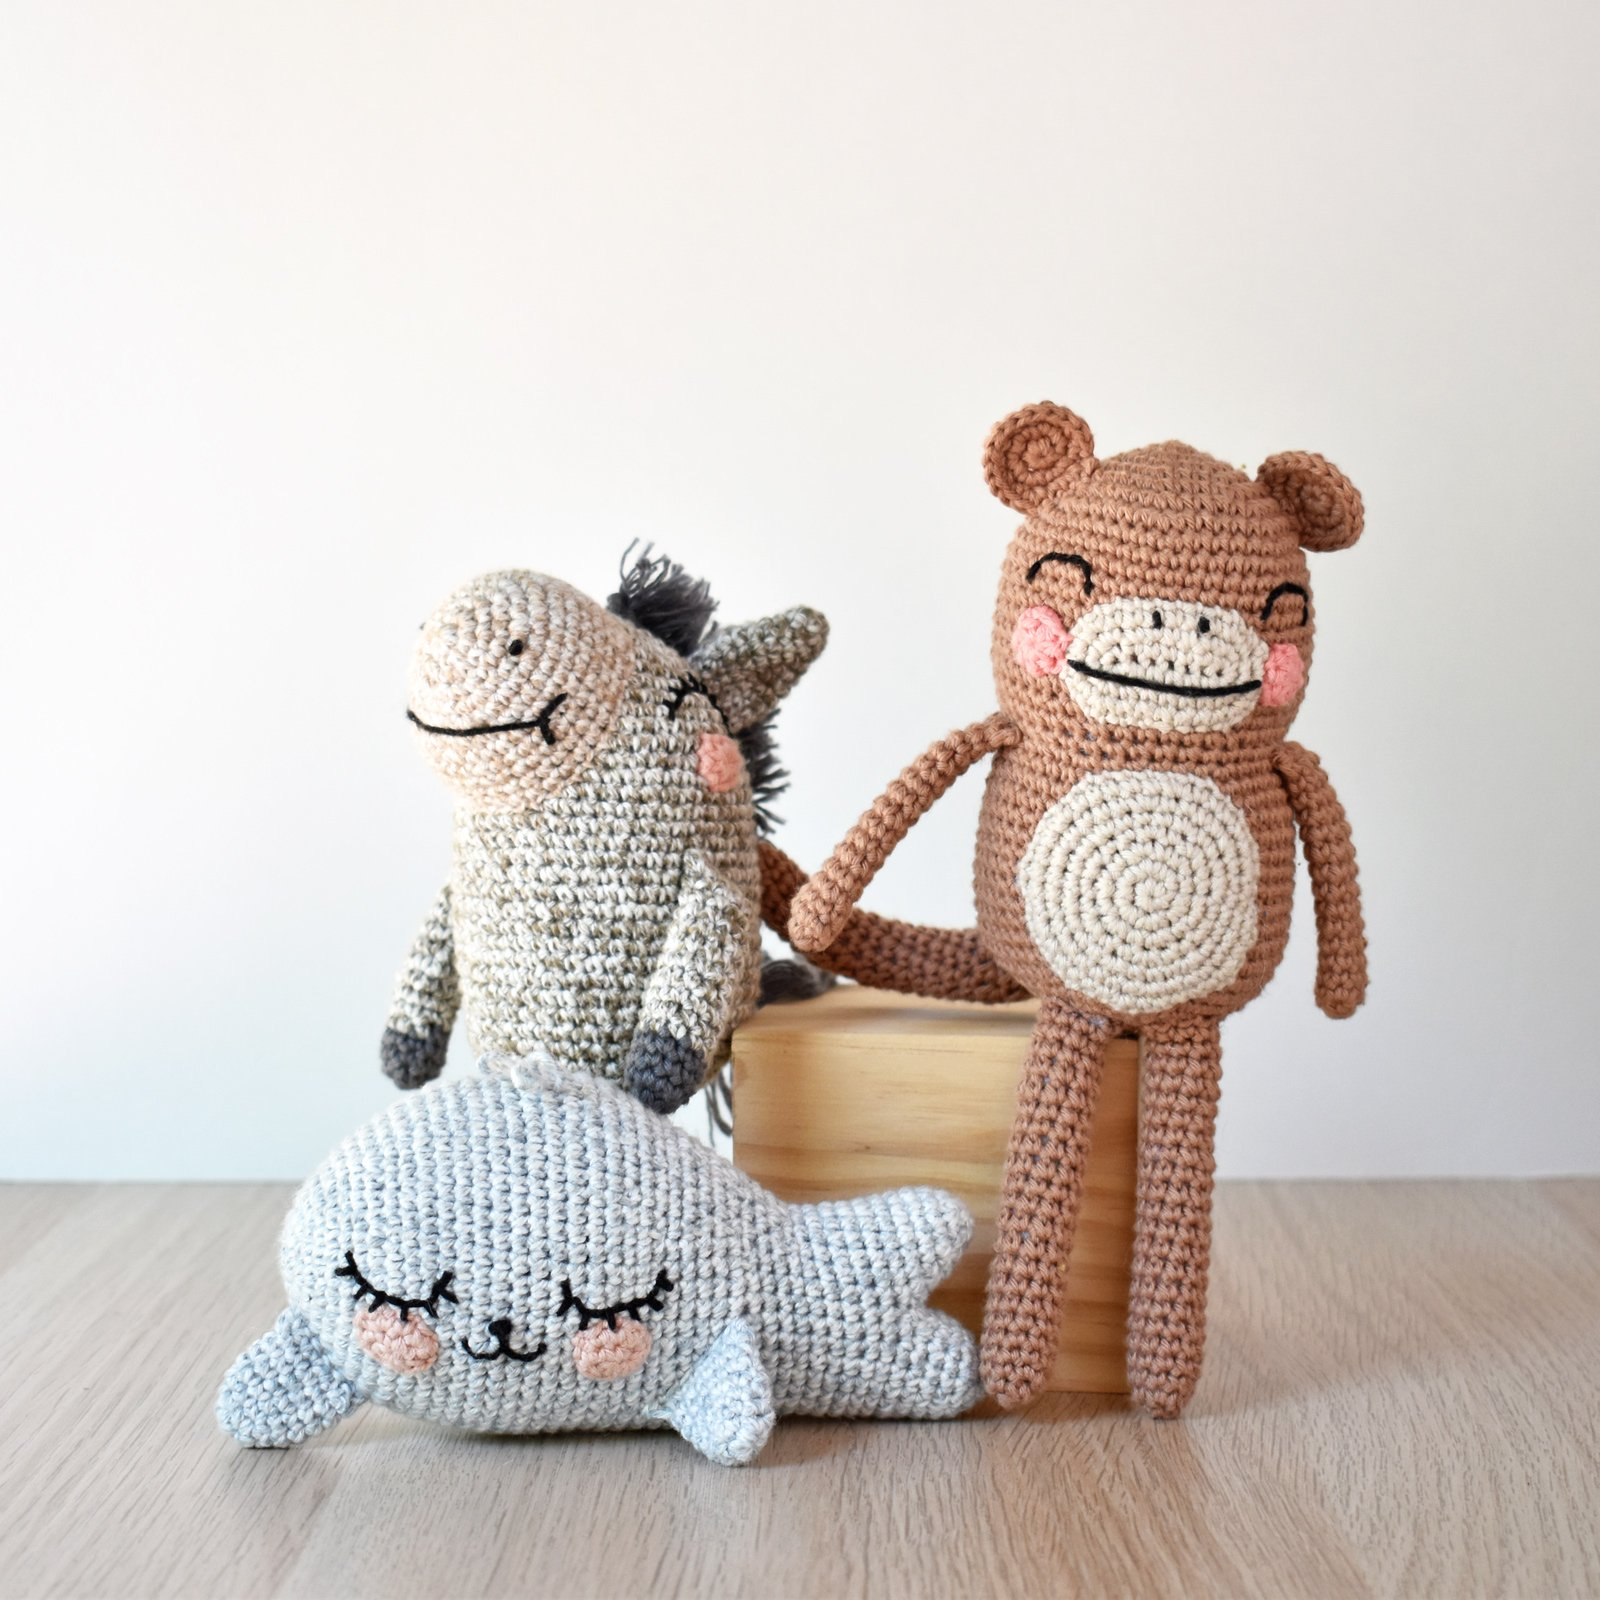 A crochet donkey, crochet monkey, and crochet seal stand on a wooden surface in front of a white backdrop.